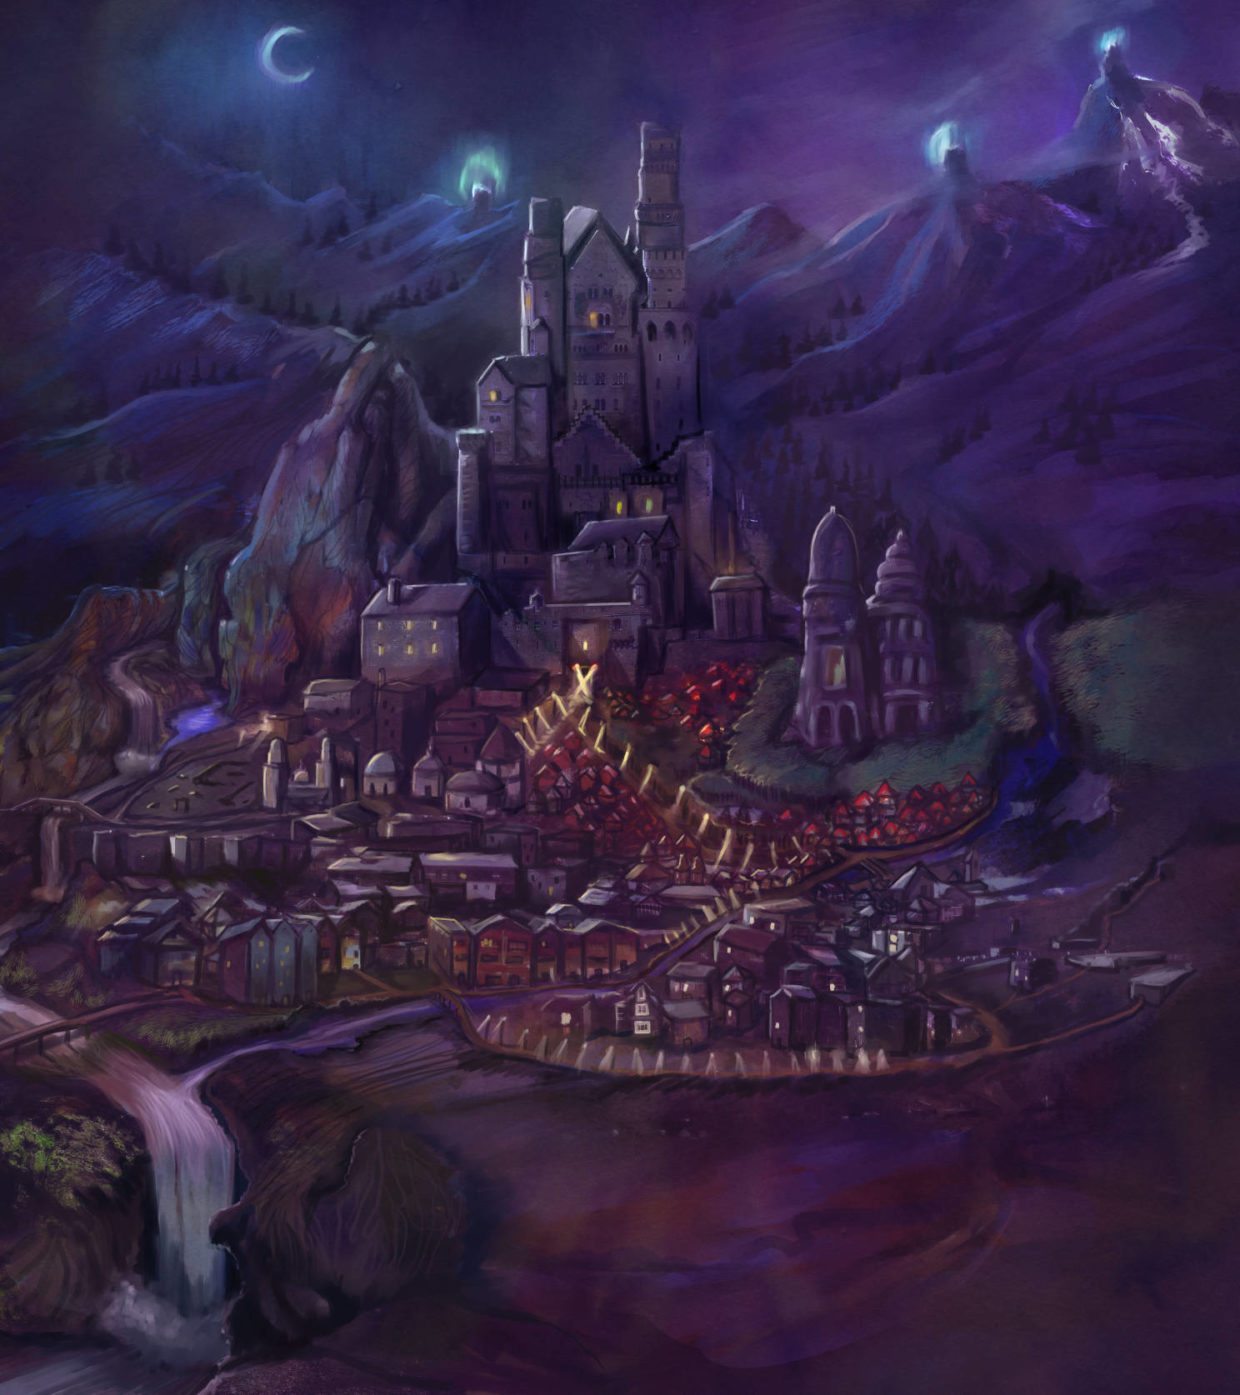 Purple Night Fantasy City in the Mountains watchtower castle waterfall ruins fantasy concept cover book cover art